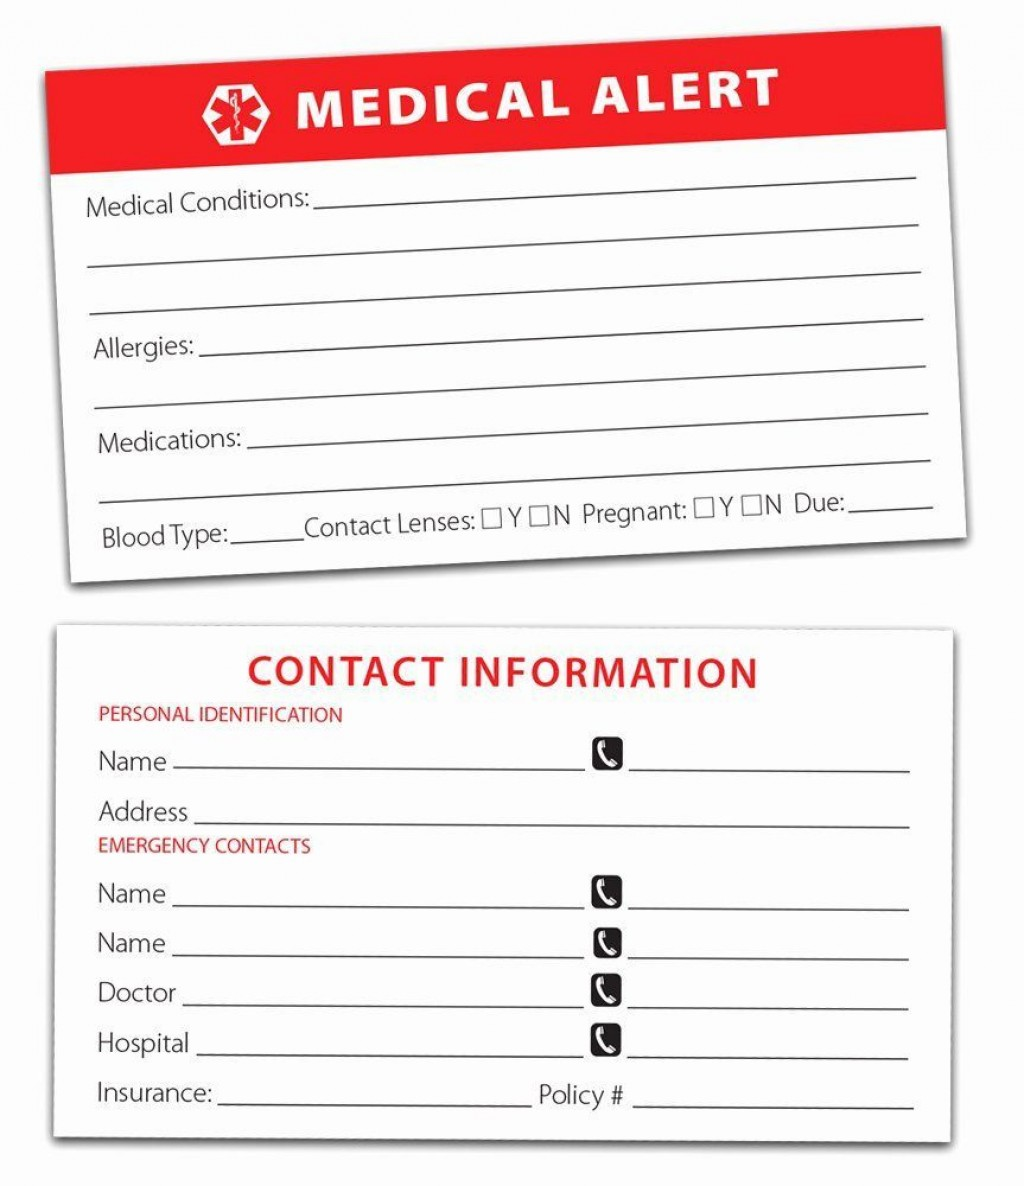 008 Wonderful Free Emergency Contact Card Template Uk Highest Clarity Large